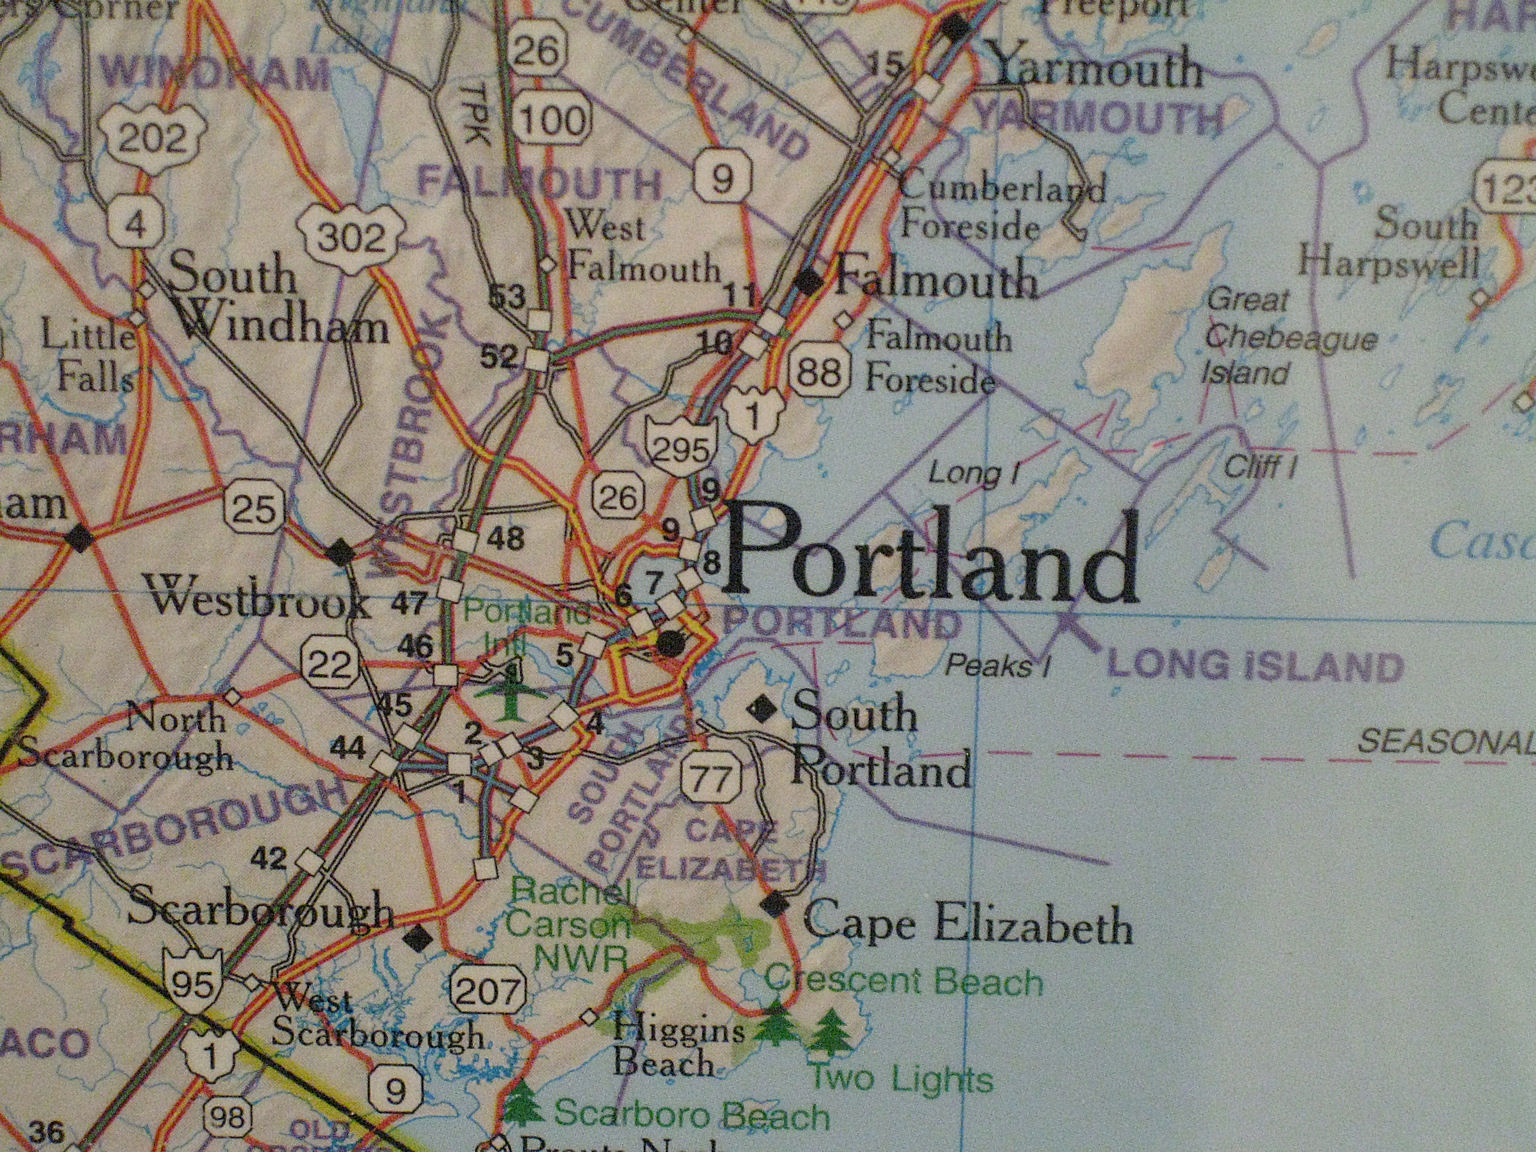 jan krentz blog blog archive portland maine. map portland maine area – swimnovacom